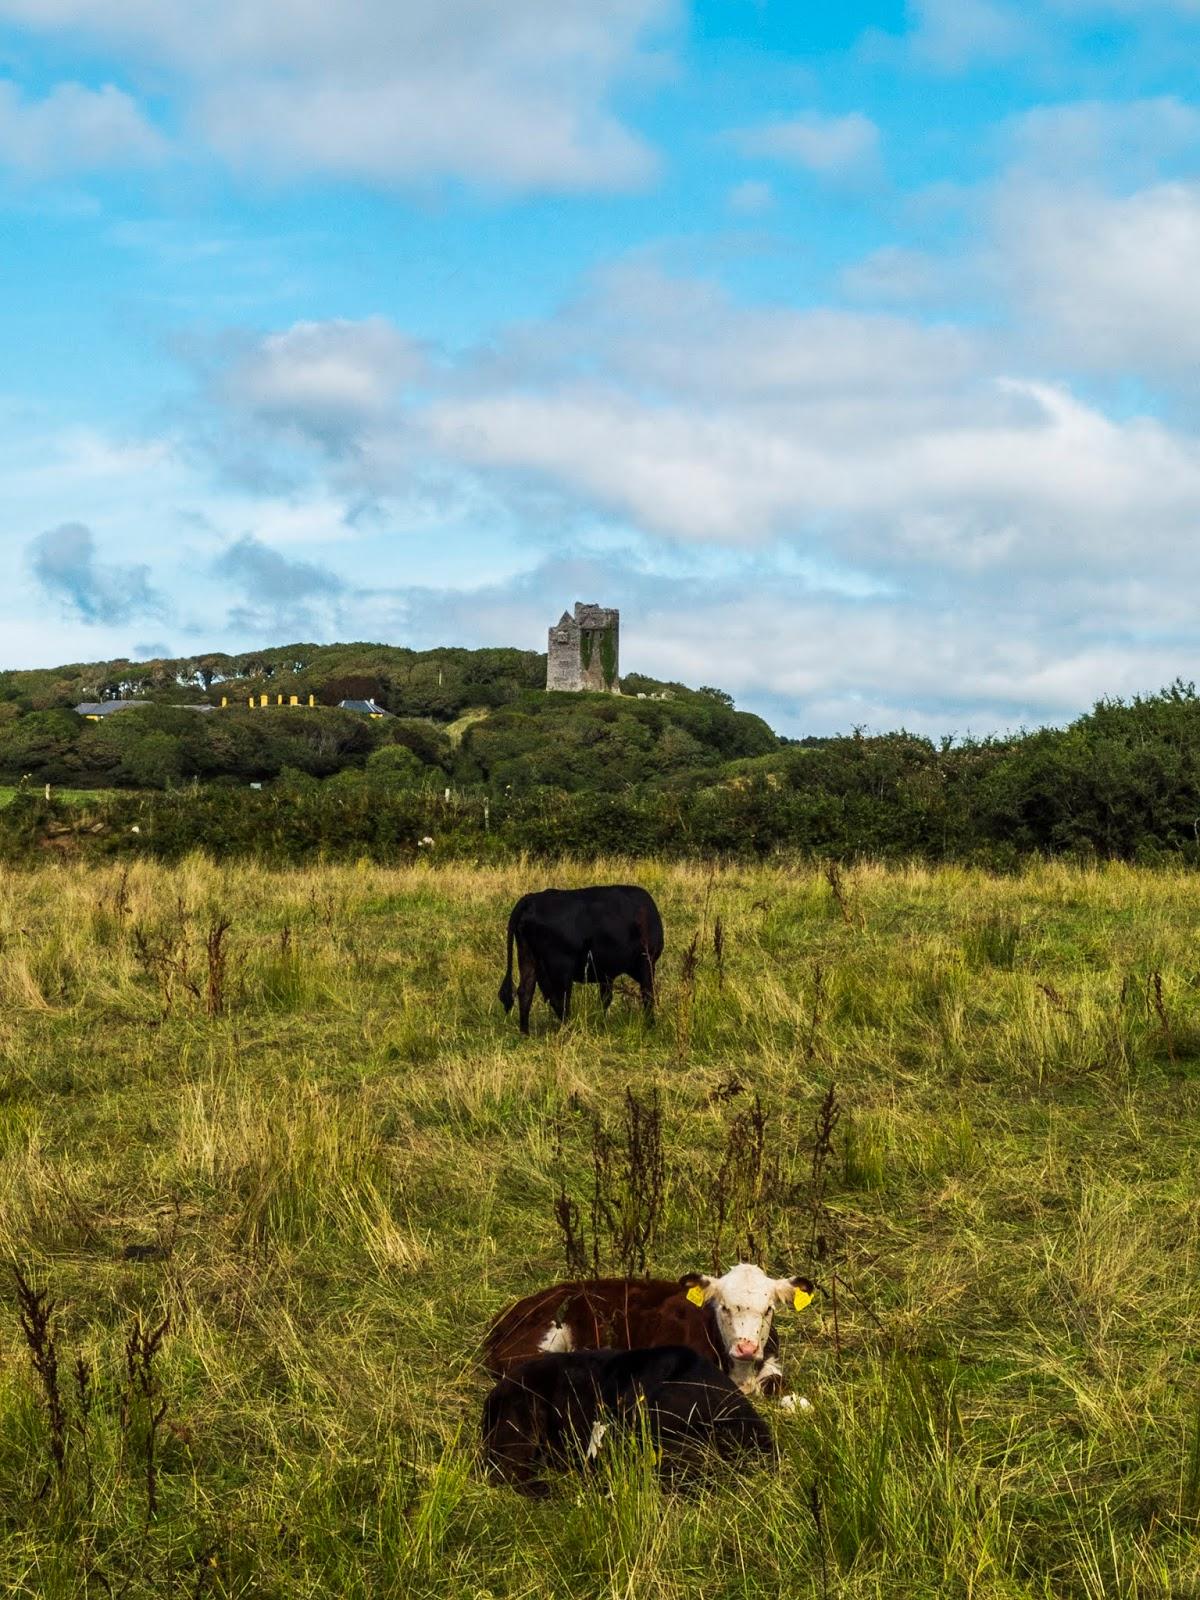 A view of the Ballinalacken Castle as seen from the Doolin Caves in County Clare.